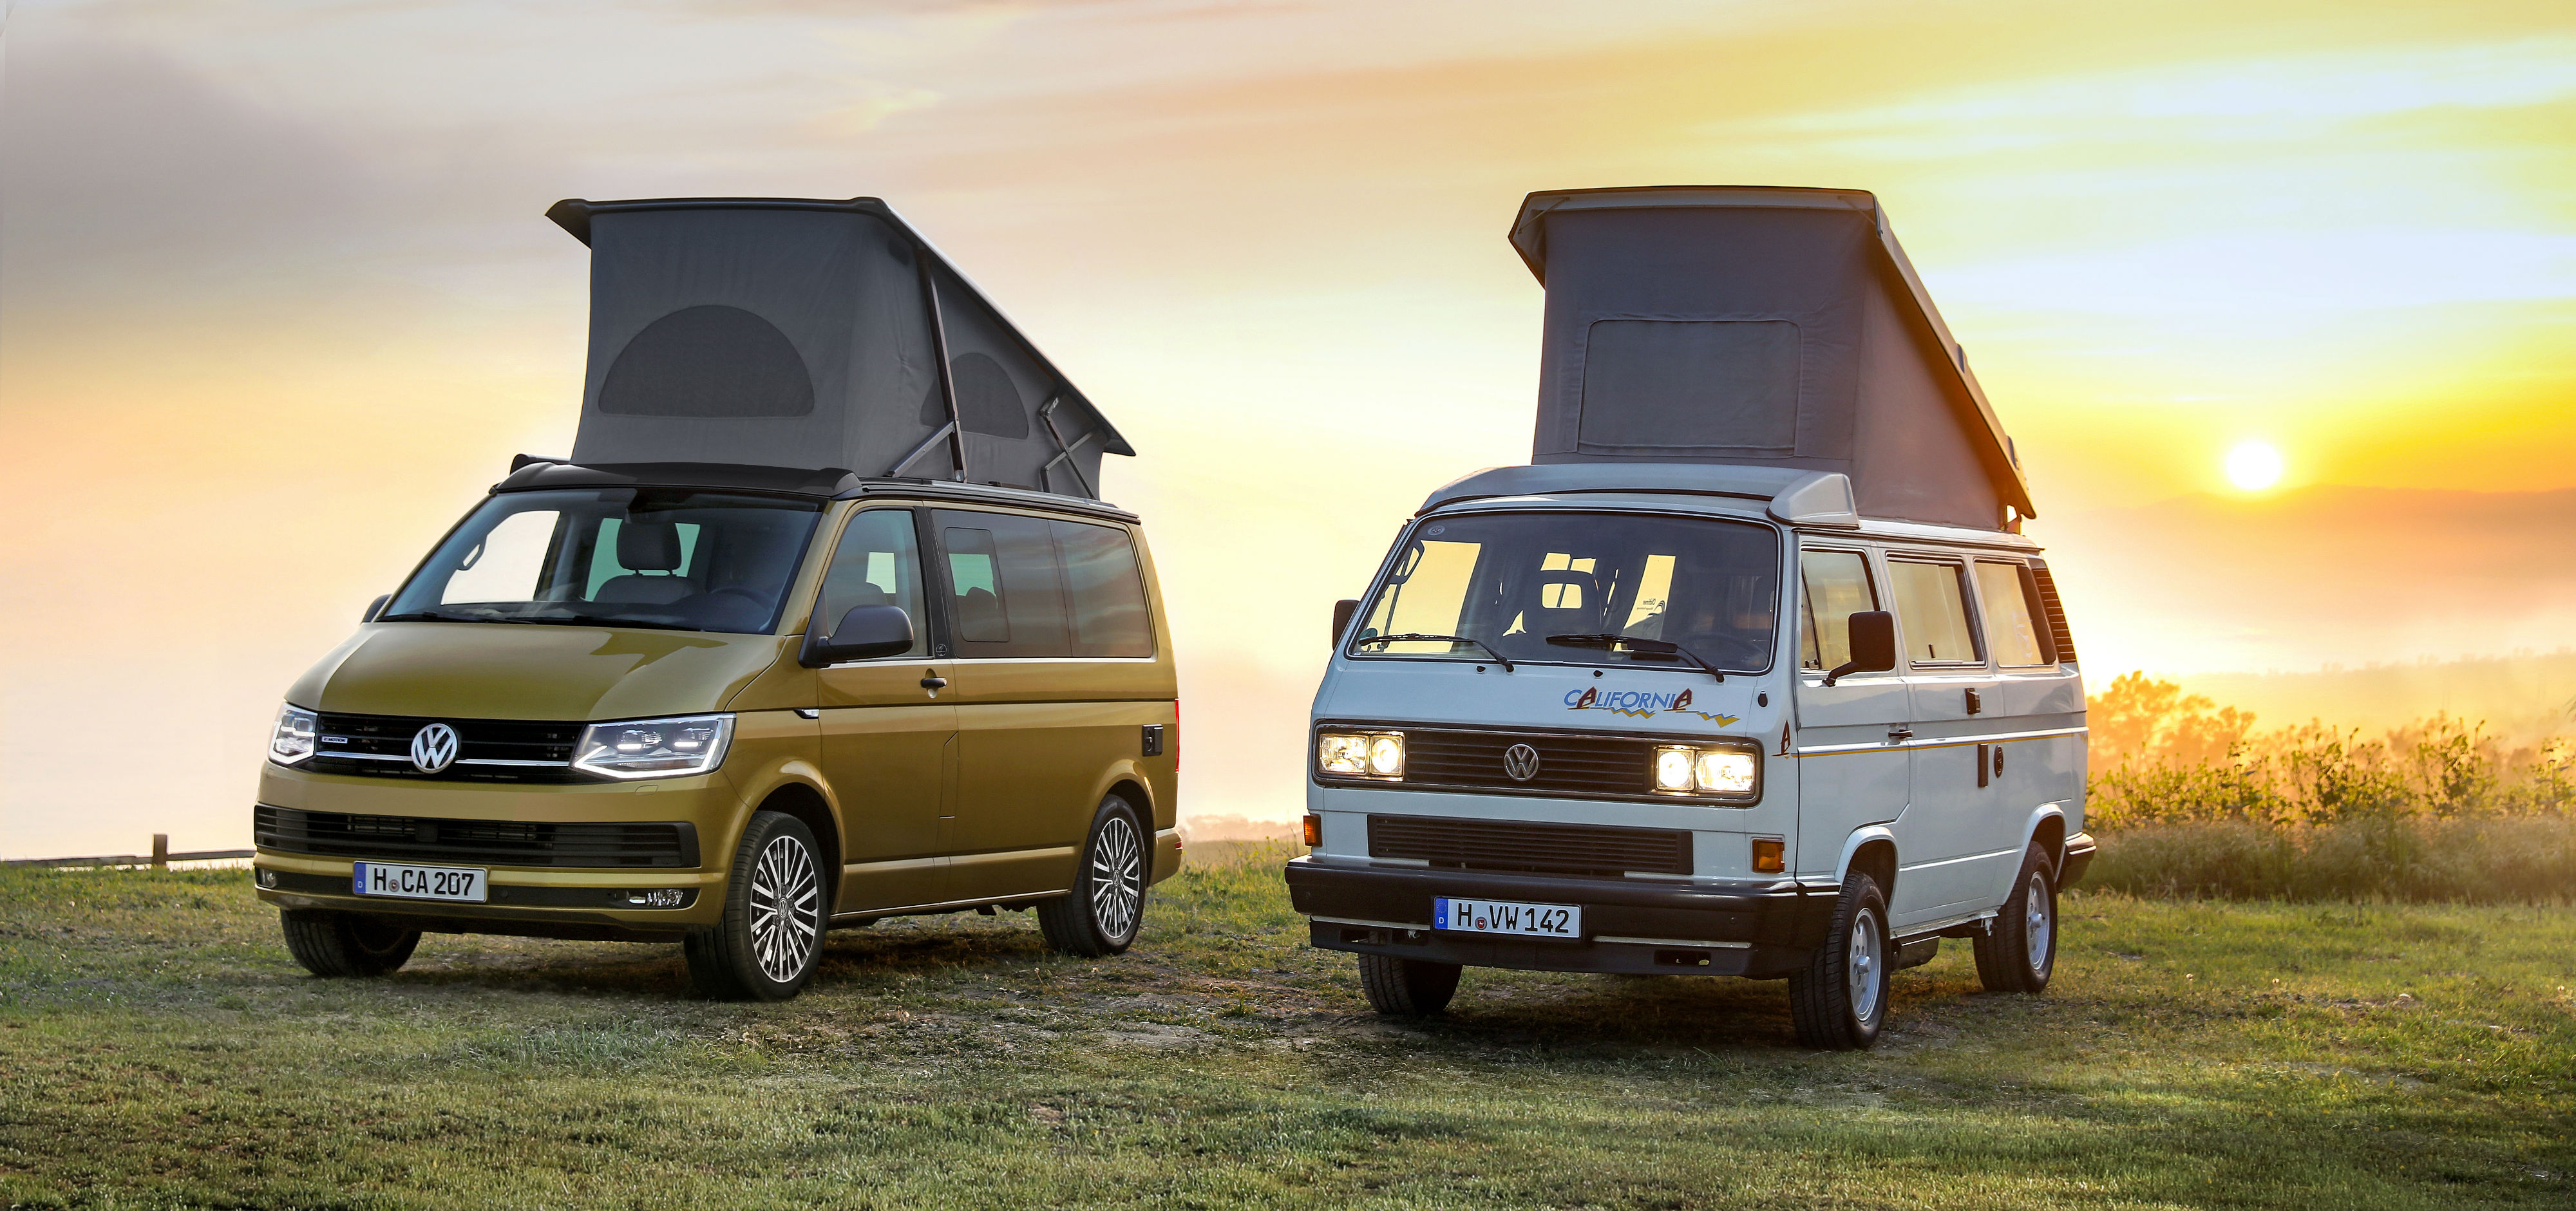 """Volkswagen Commercial Vehicles celebrates the 30th anniversary of its camping icon with the special """"California 30 Years"""" model, an anniversary vehicle limited to a production run of 999 units."""